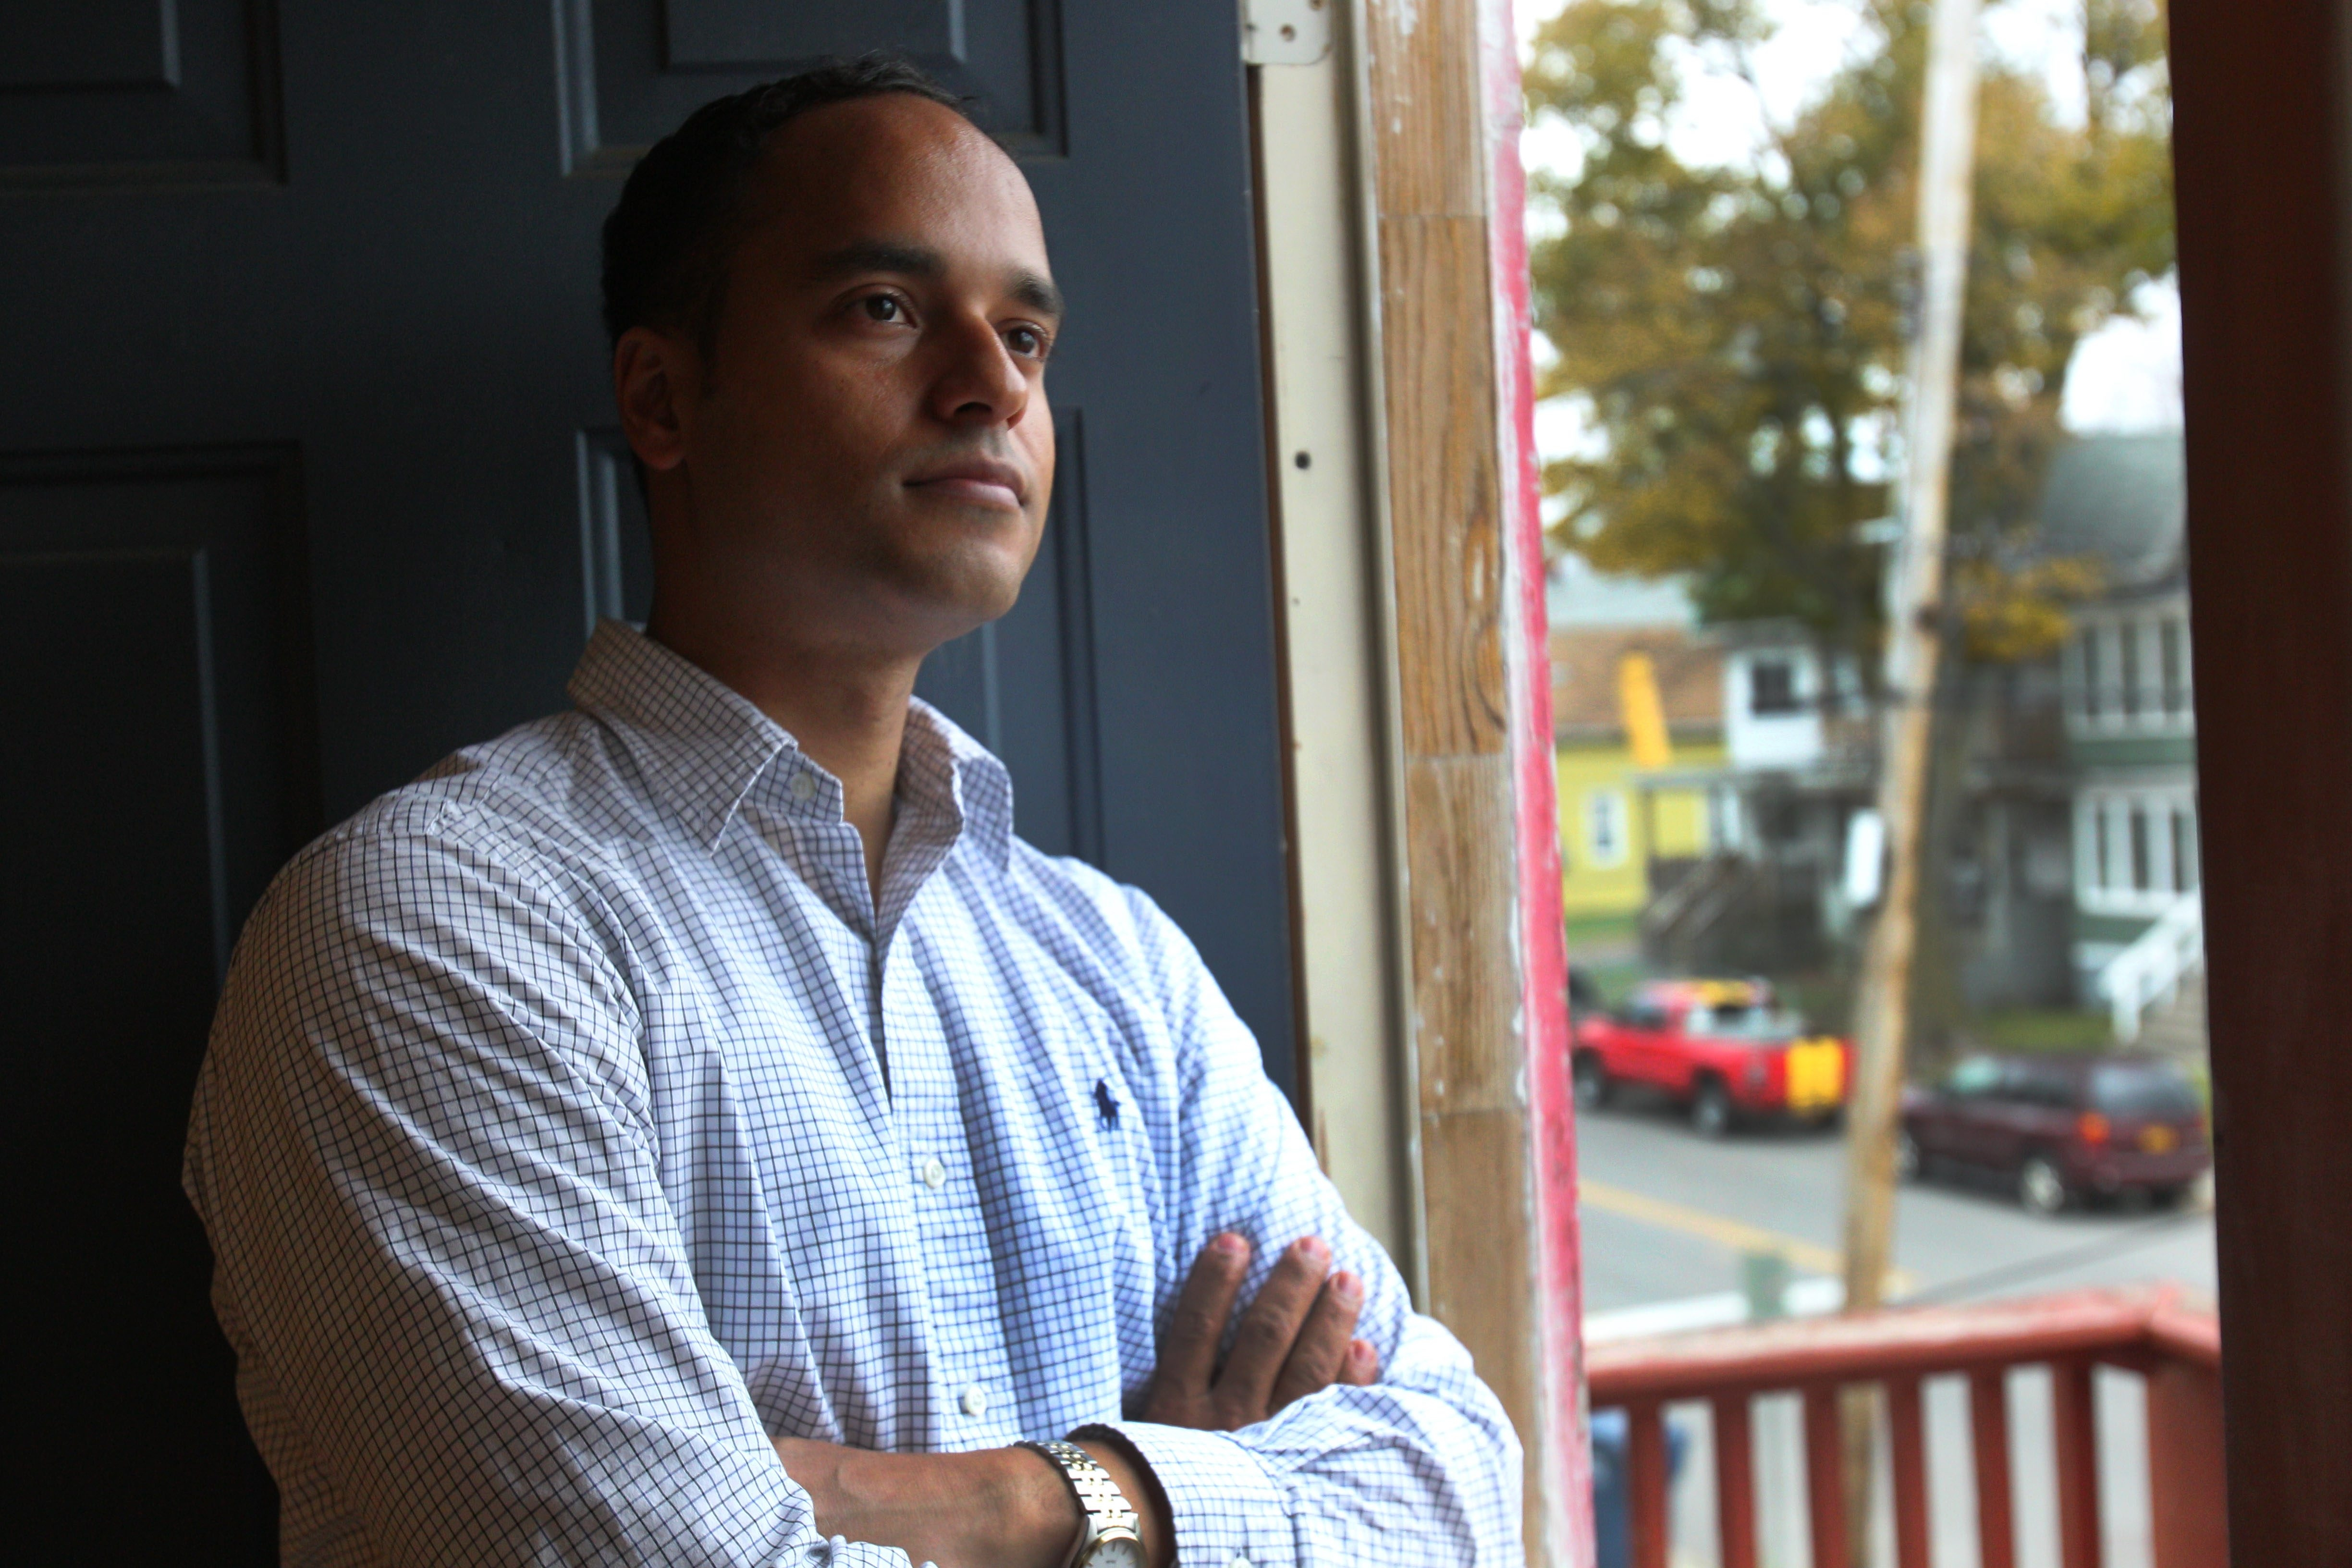 Sergio R. Rodriguez plans to run for the Buffalo School Board on a platform that emphasizes  parental involvement, increasing attendance rates and preparing students for the workforce.